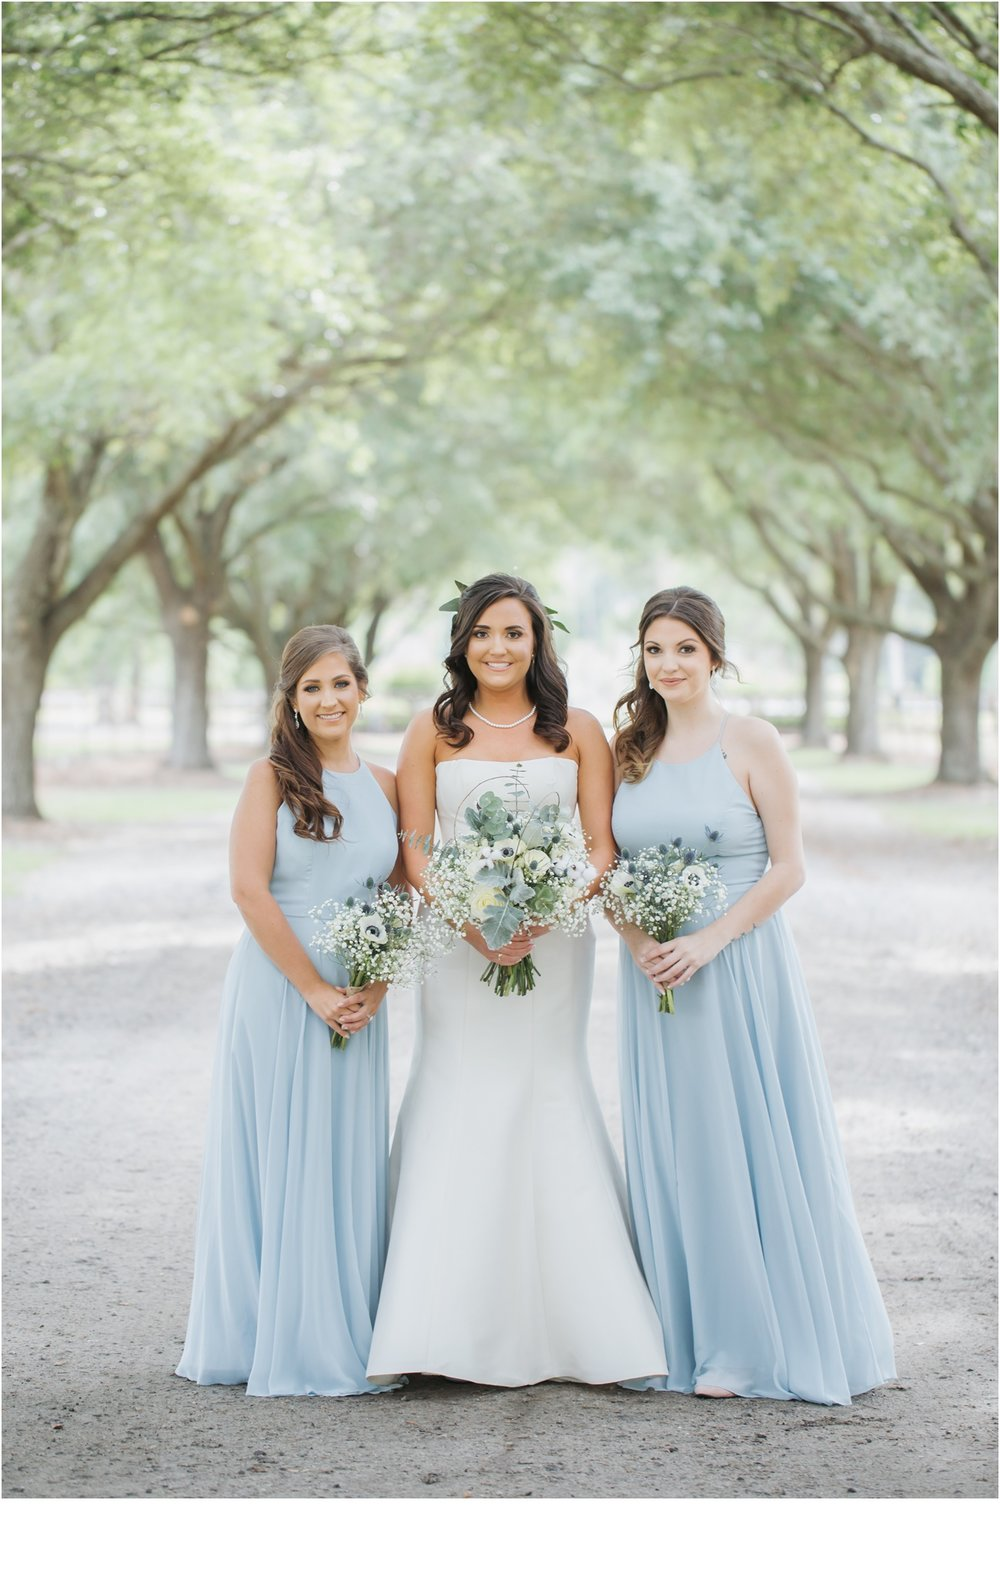 Rainey_Gregg_Photography_St._Simons_Island_Georgia_California_Wedding_Portrait_Photography_0908.jpg